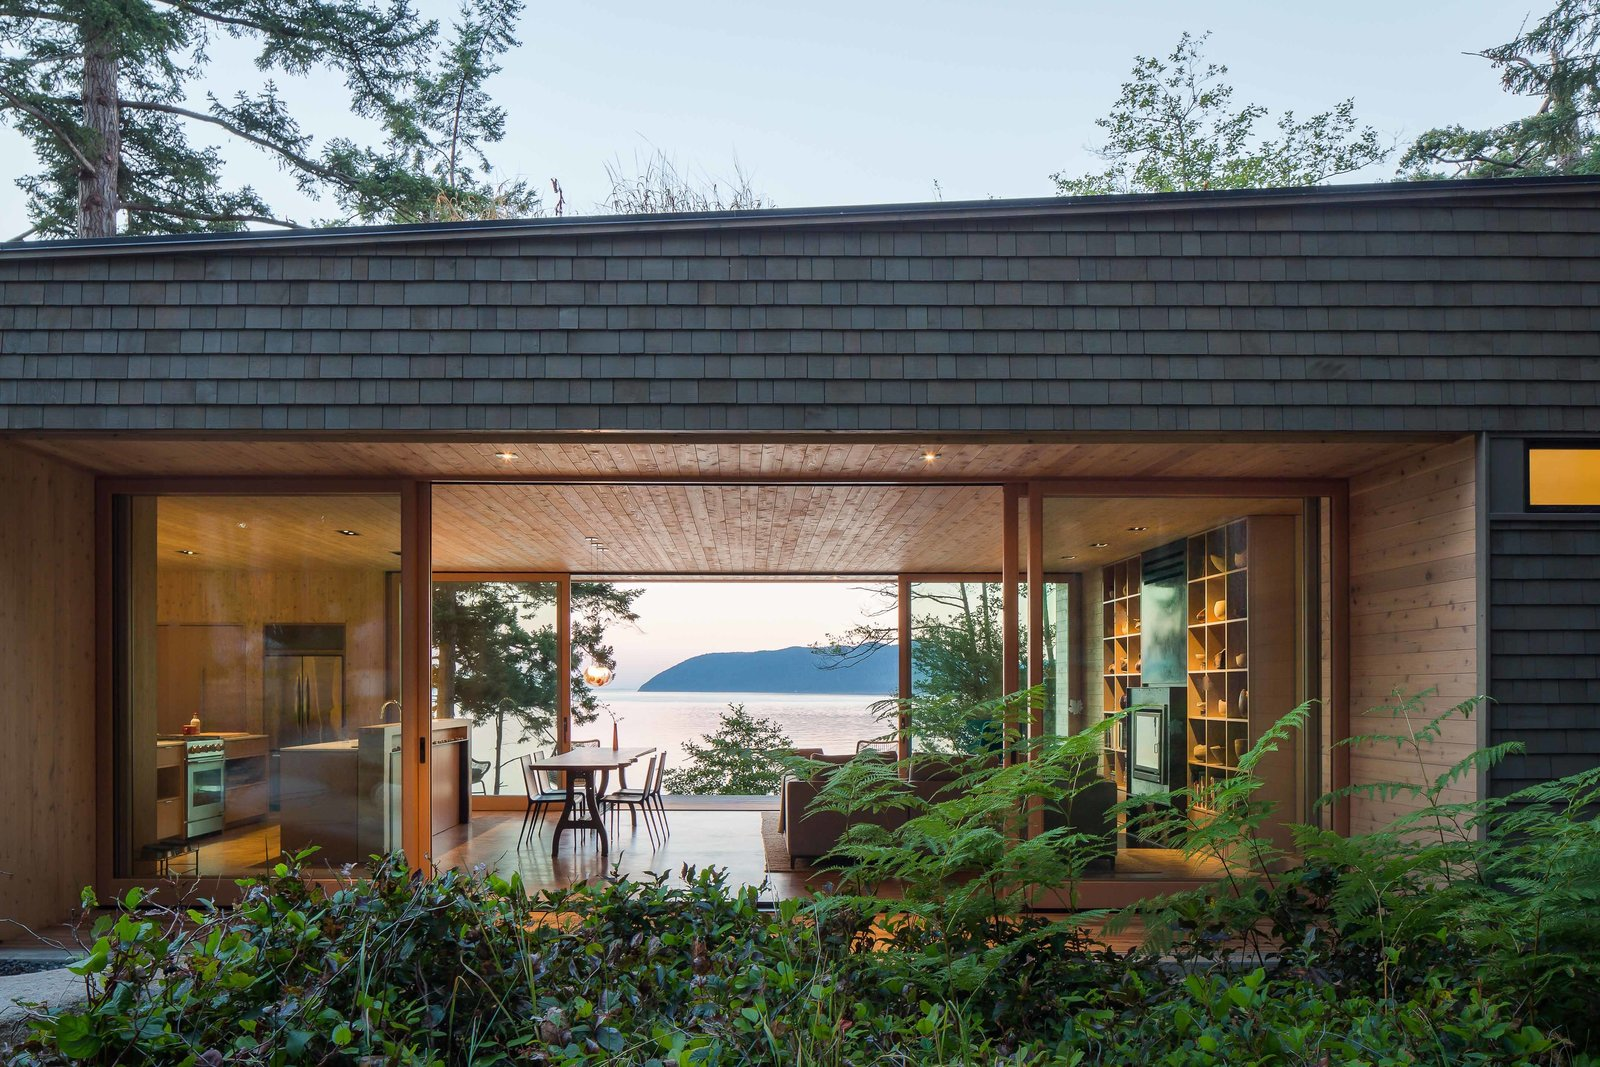 """""""The home is quite small, but designed in such a way that you don't feel it,"""" Herrin says. Lift-slide openings by Quantum Windows & Doors, which were fabricated fewer than 50 miles from the house, make the main living space seem larger. Tagged: Exterior, Shrubs, and Wood Siding Material. San Juan Islands Residence by Kelly Dawson"""